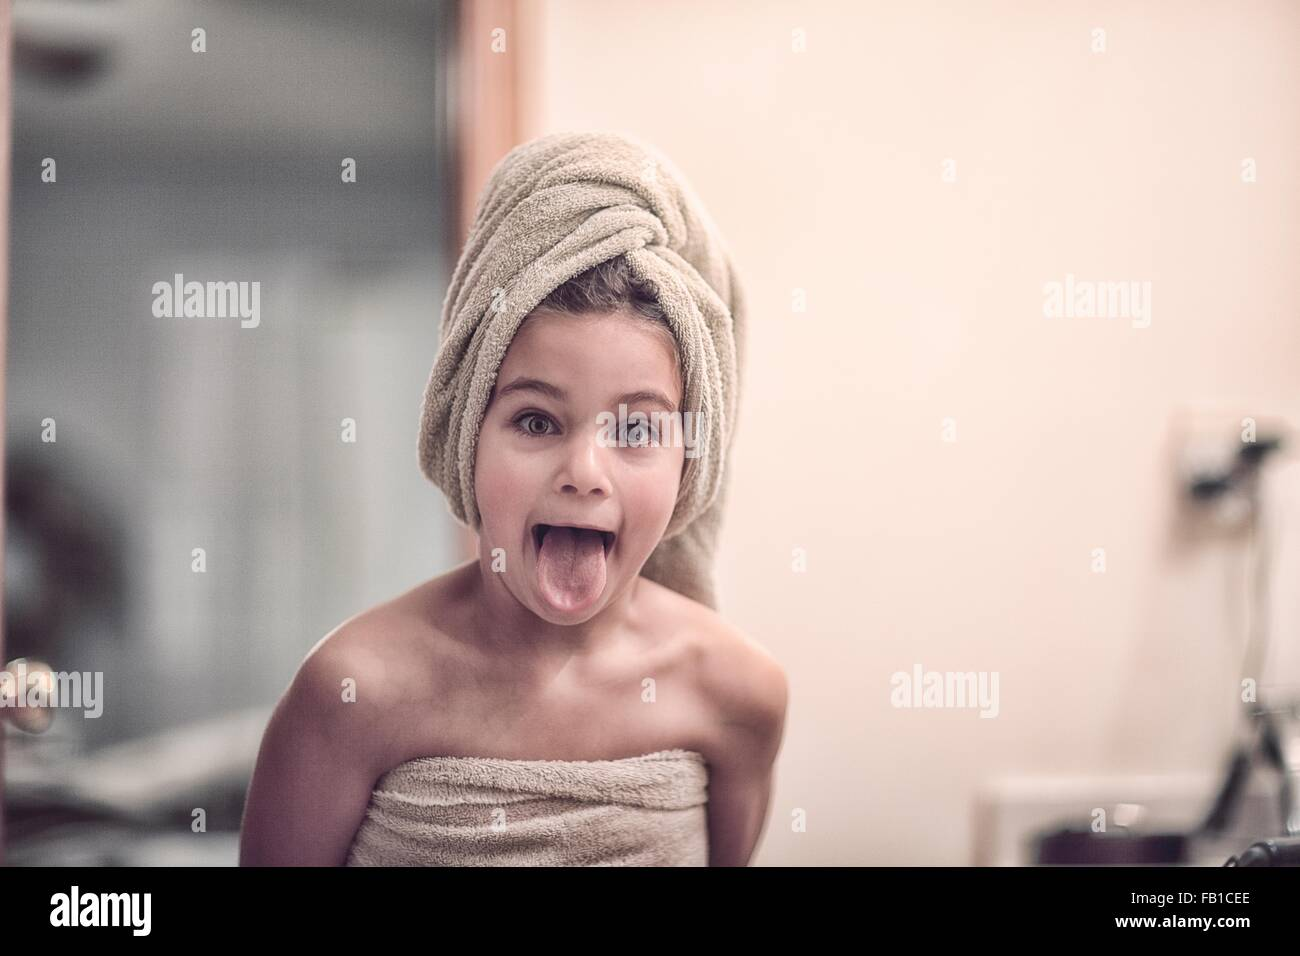 Girl wrapped in towel wearing towel on head looking at camera sticking out tongue - Stock Image